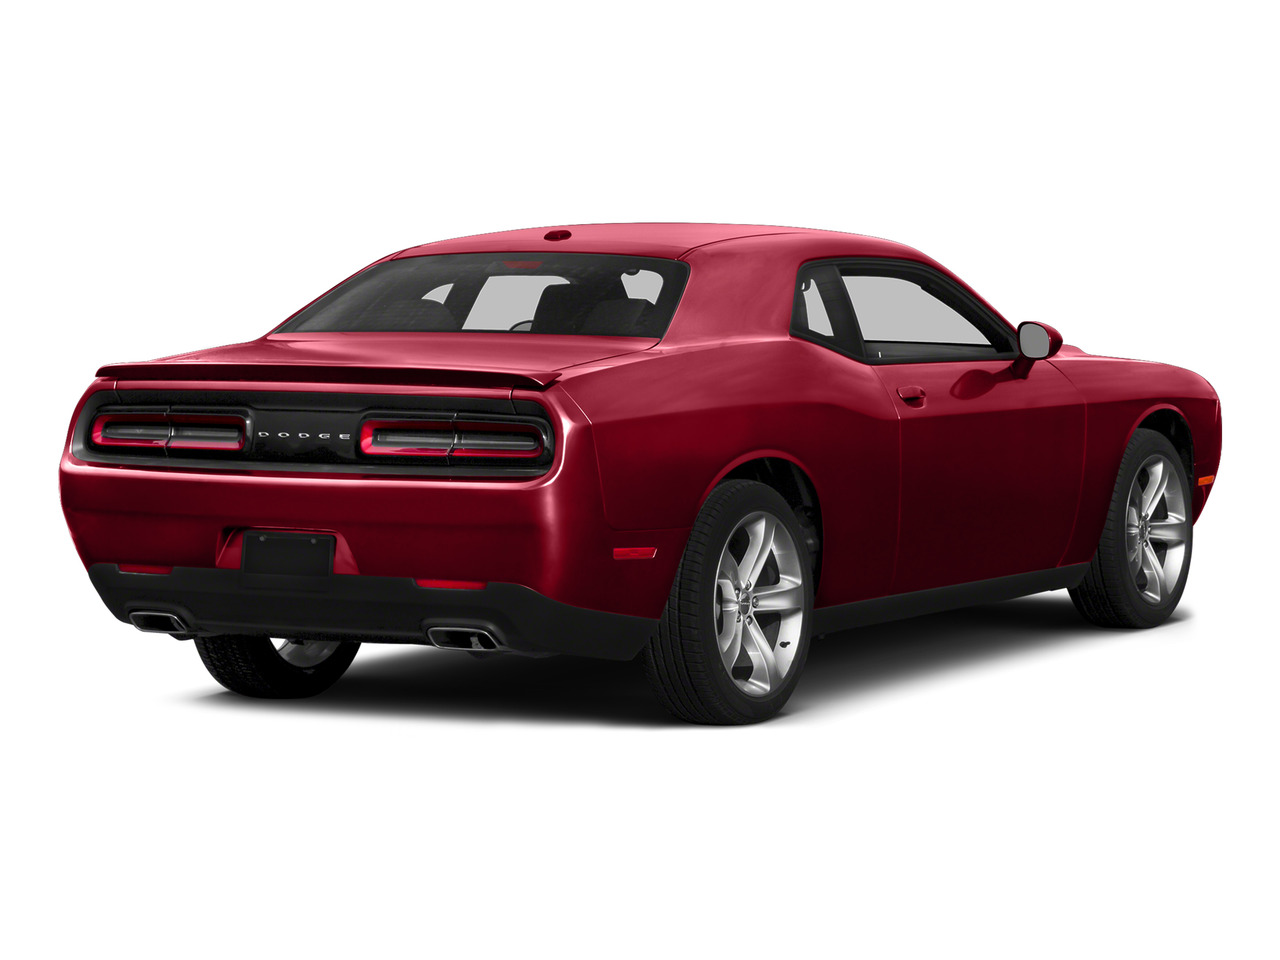 2015 Dodge Challenger R/T SCAT PACK Cary NC